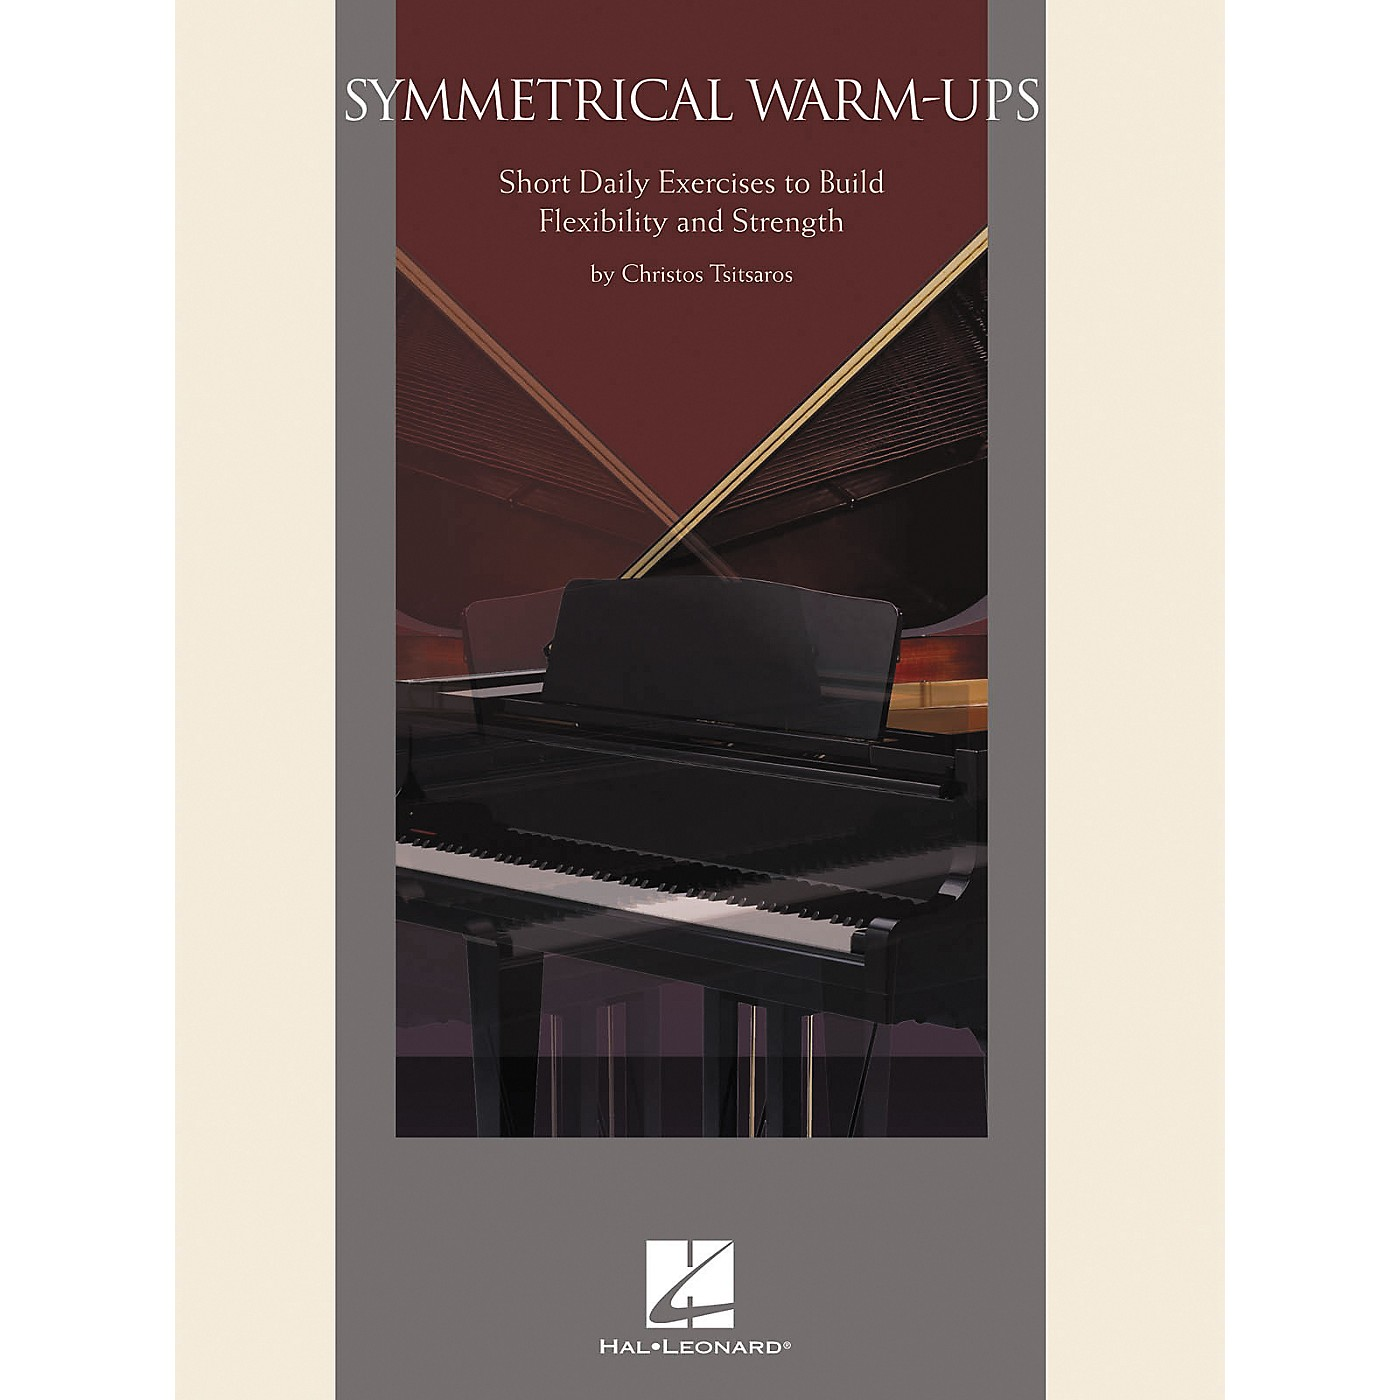 Hal Leonard Symmetrical Warm-Ups - Short Daily Exercises To Build Flexibility And Strength thumbnail